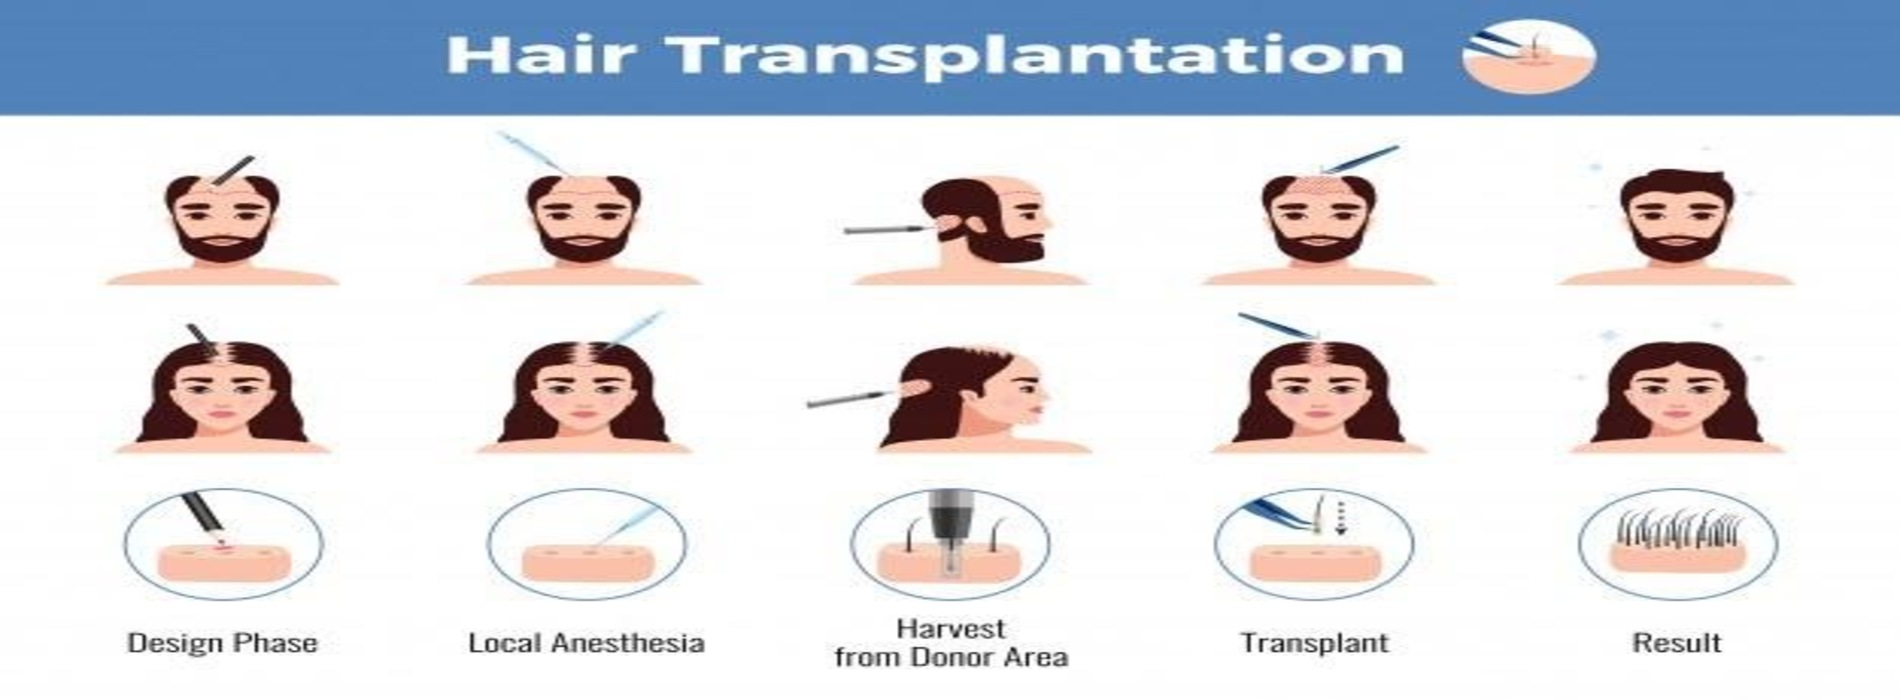 How Much Does Hair Transplant Cost in Hyderabad